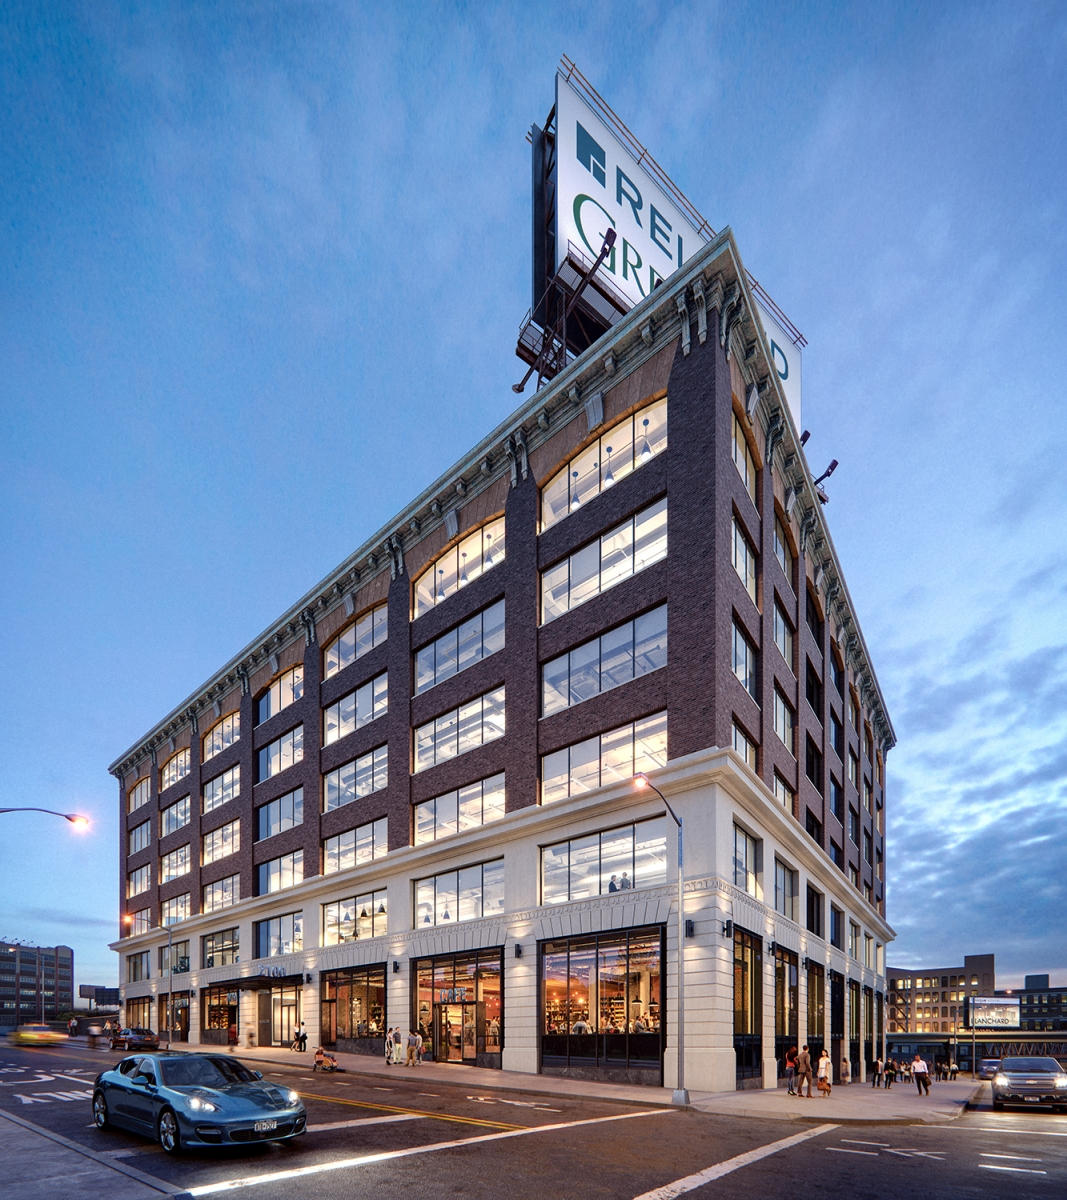 2100 49th Ave, Long Island City, NY 11101, USA